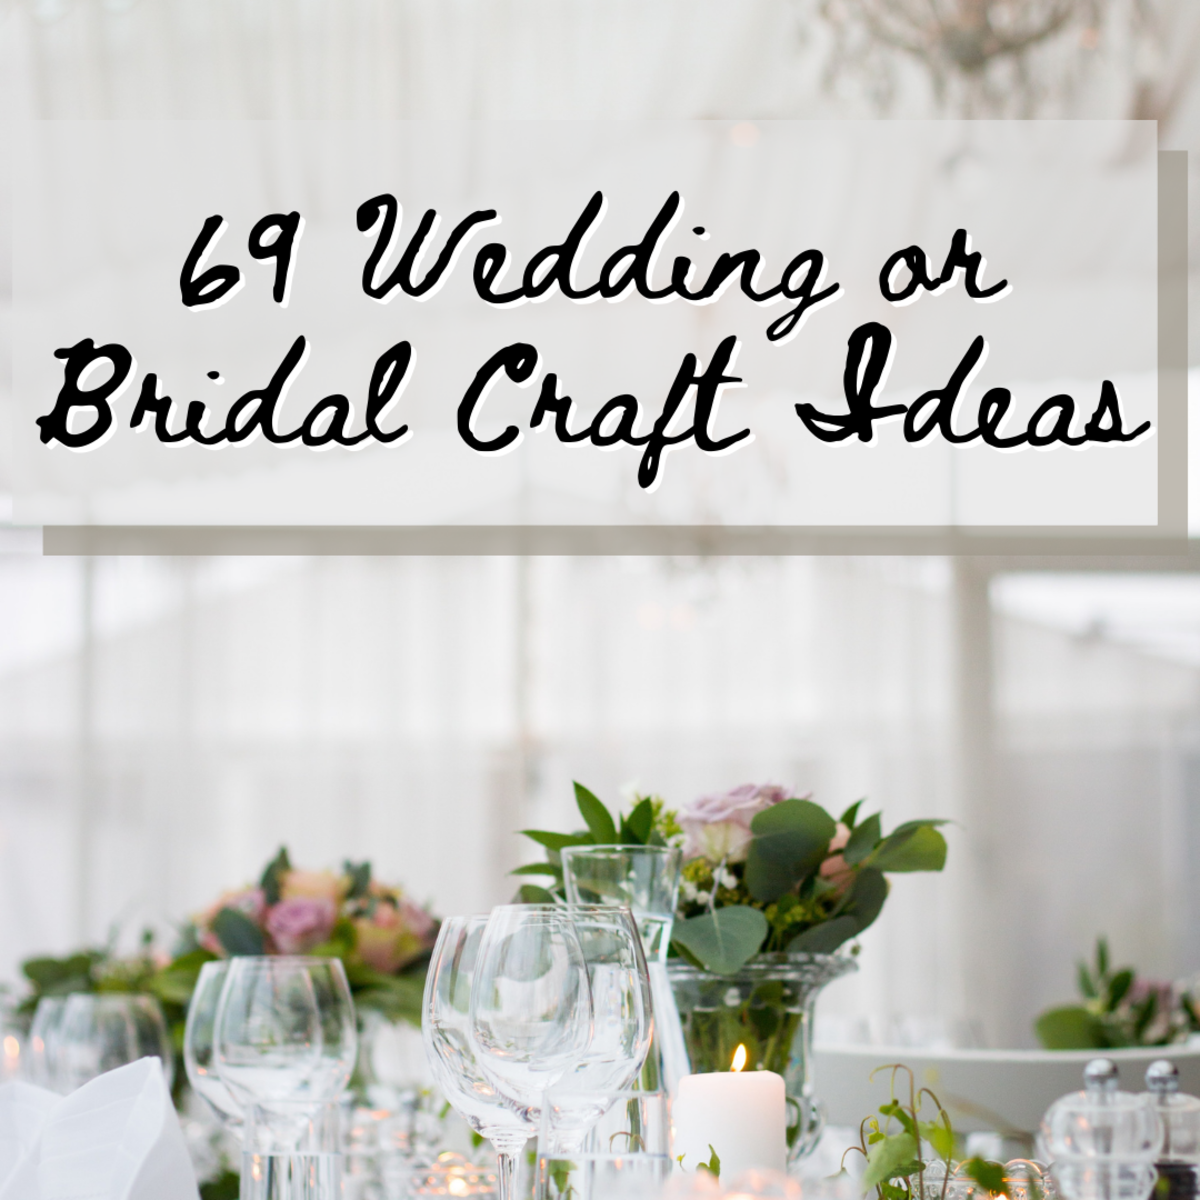 This article provides you with 69 awesome bridal or wedding craft ideas. Find all the info you need to create the perfect wedding crafts.